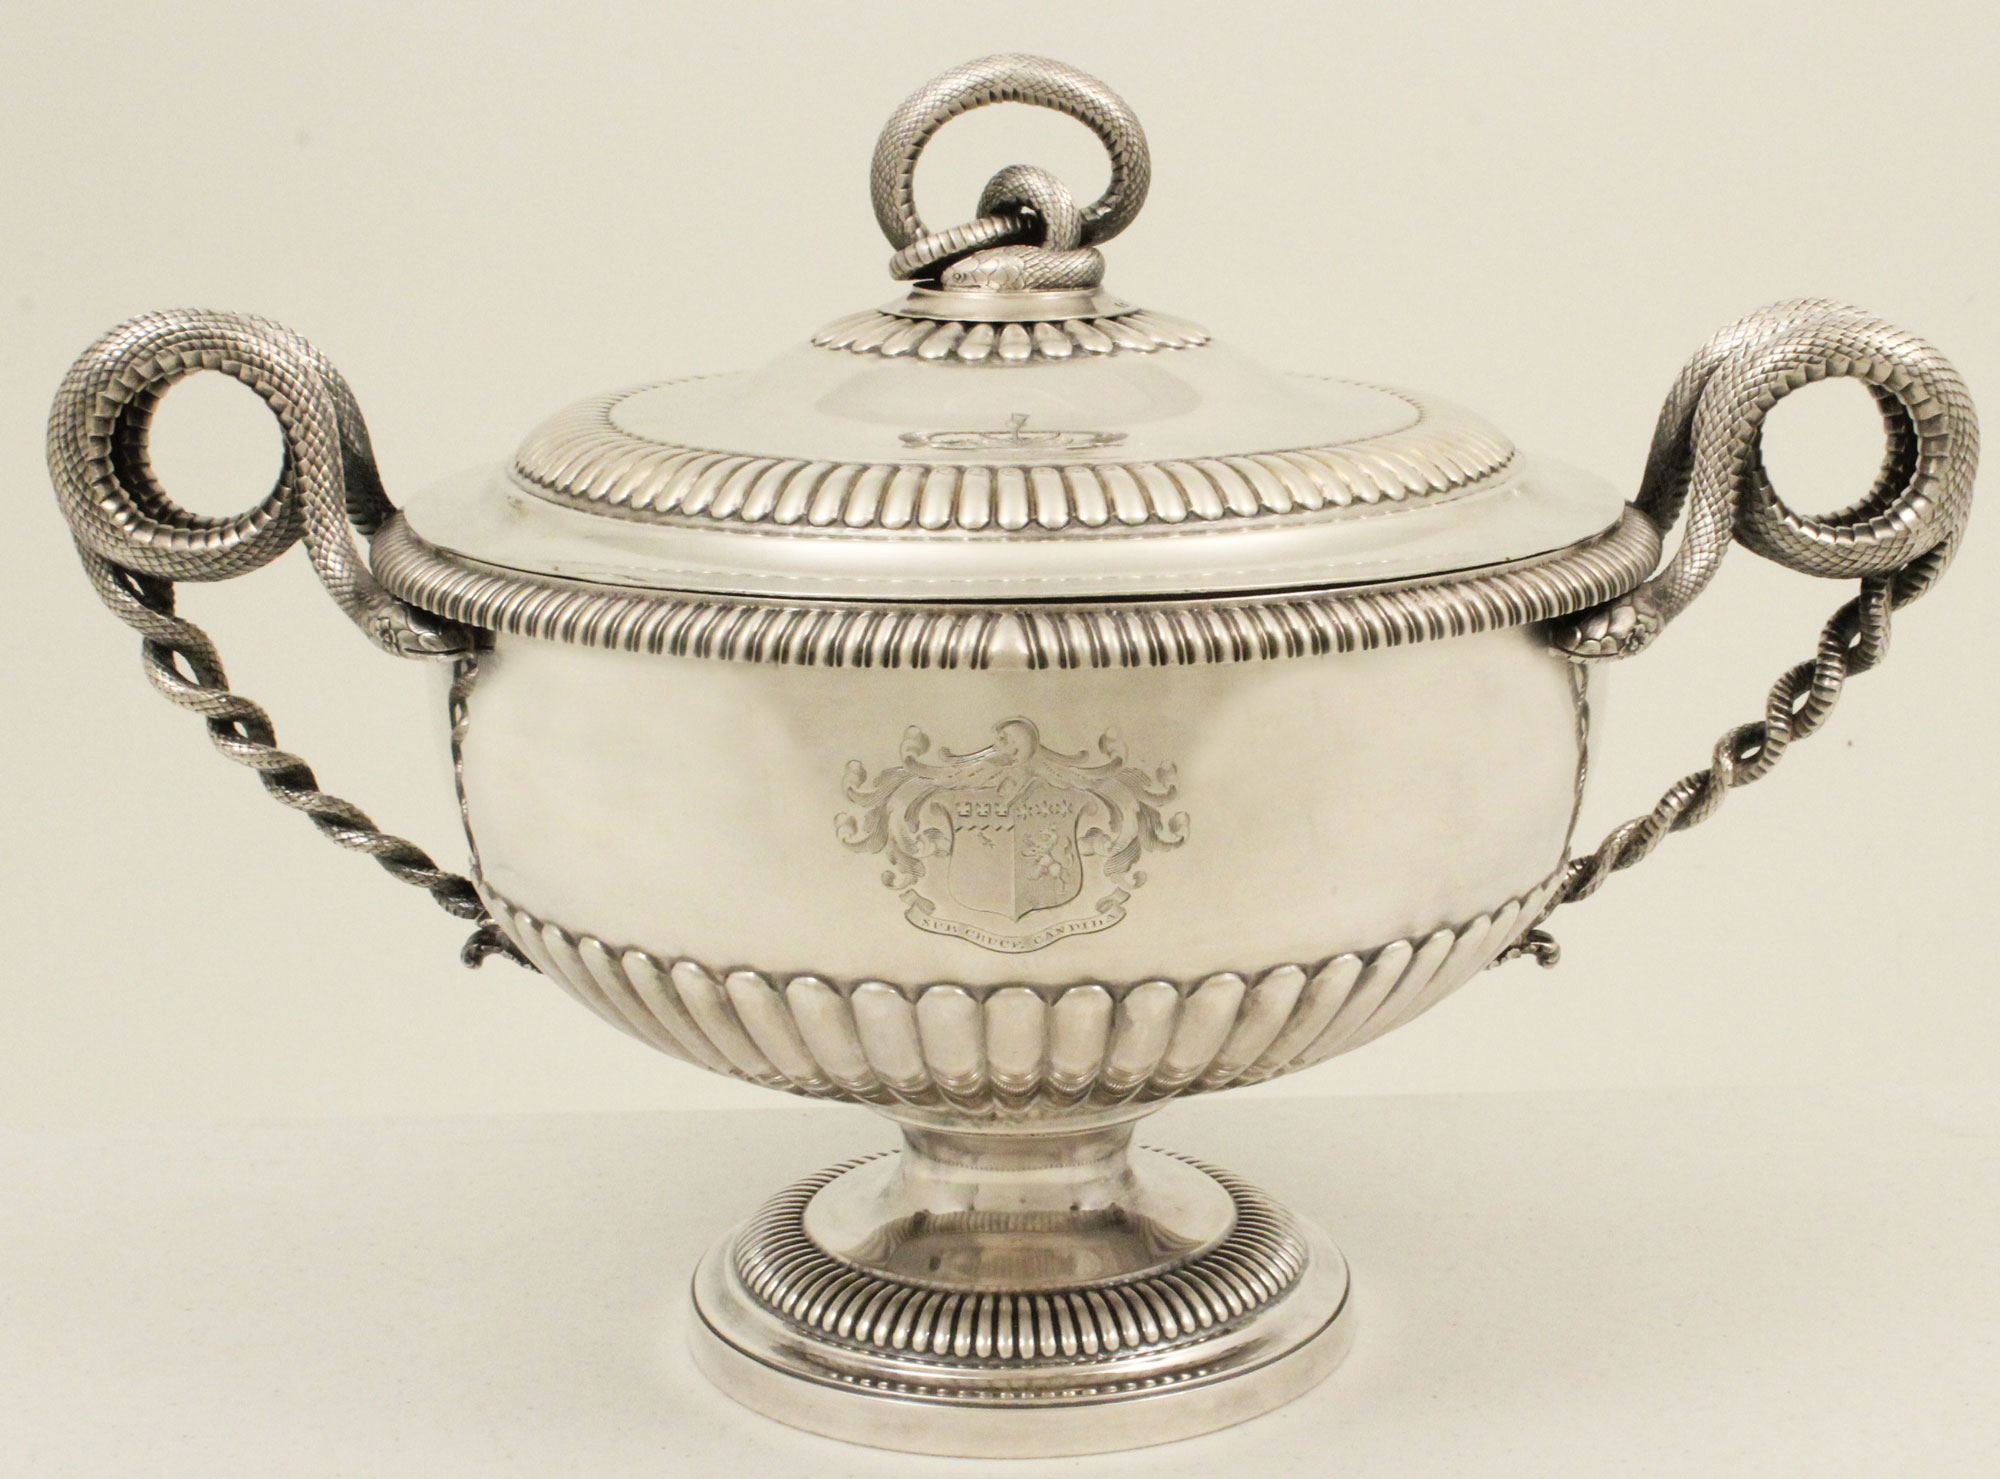 George Iii Silver Tureen, Burwash And Sibley, London, 1807